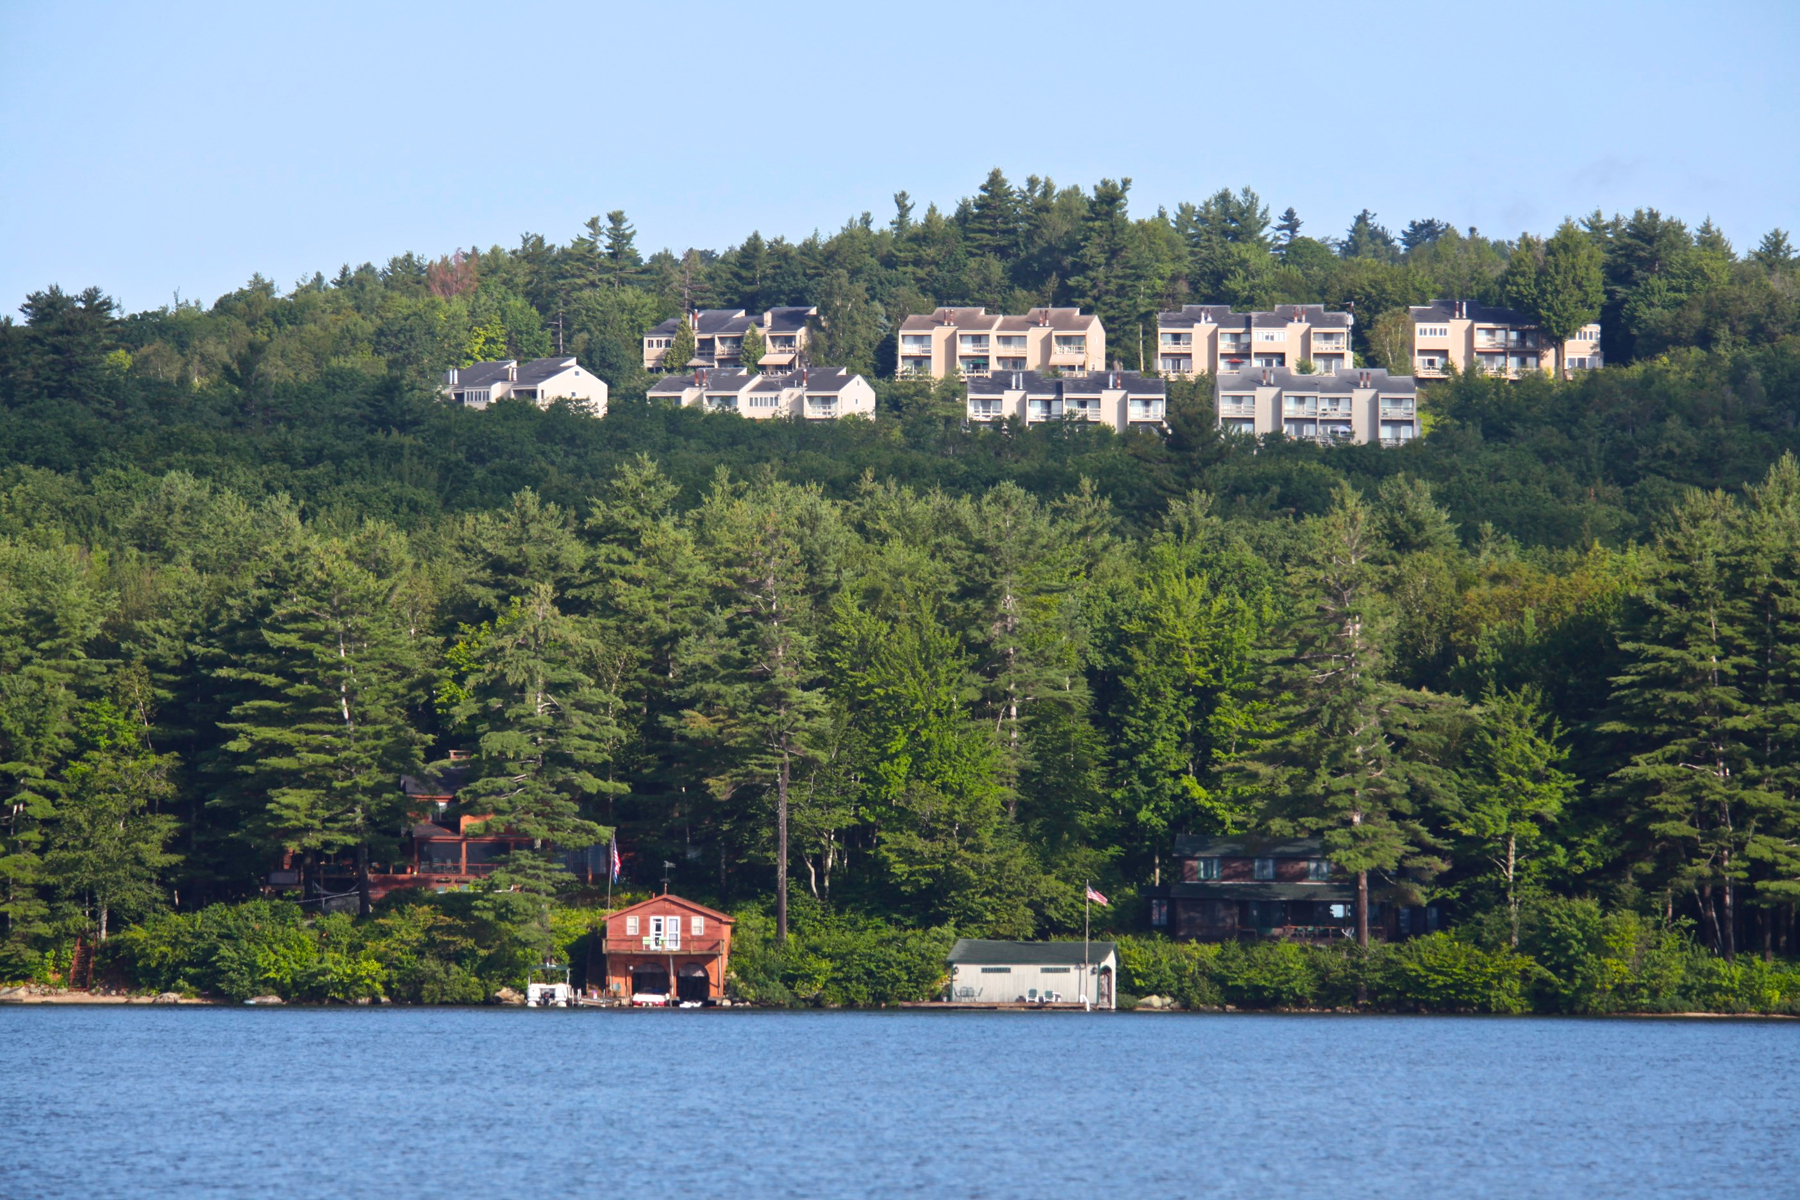 Condominium for Sale at 3 Bedroom Condo 40 Upper Skijor Steppe Sunapee, New Hampshire 03782 United States